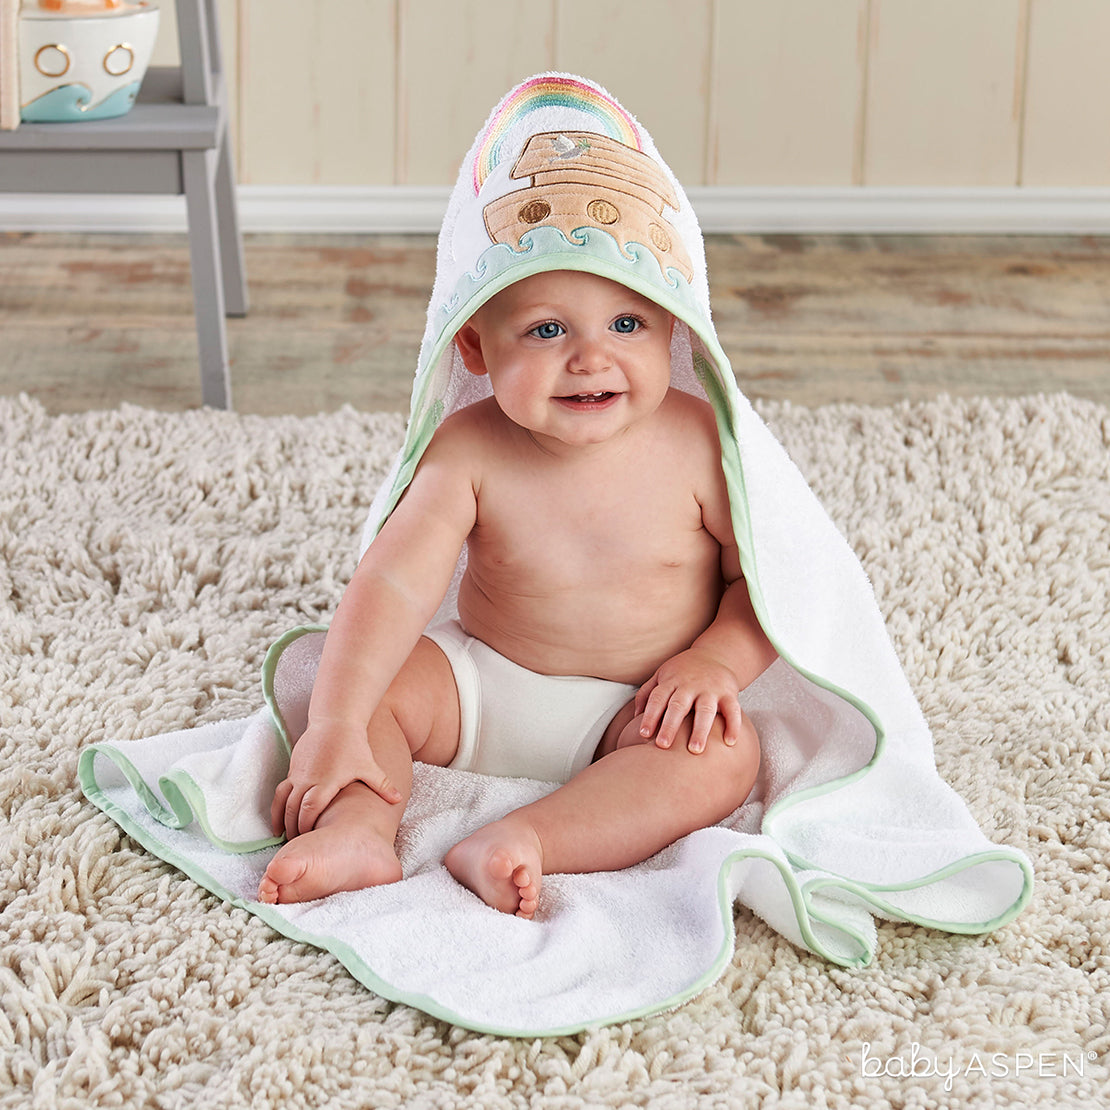 Noah's Ark Hooded Towel | The Cutest Baby Hooded Towels | Baby Aspen